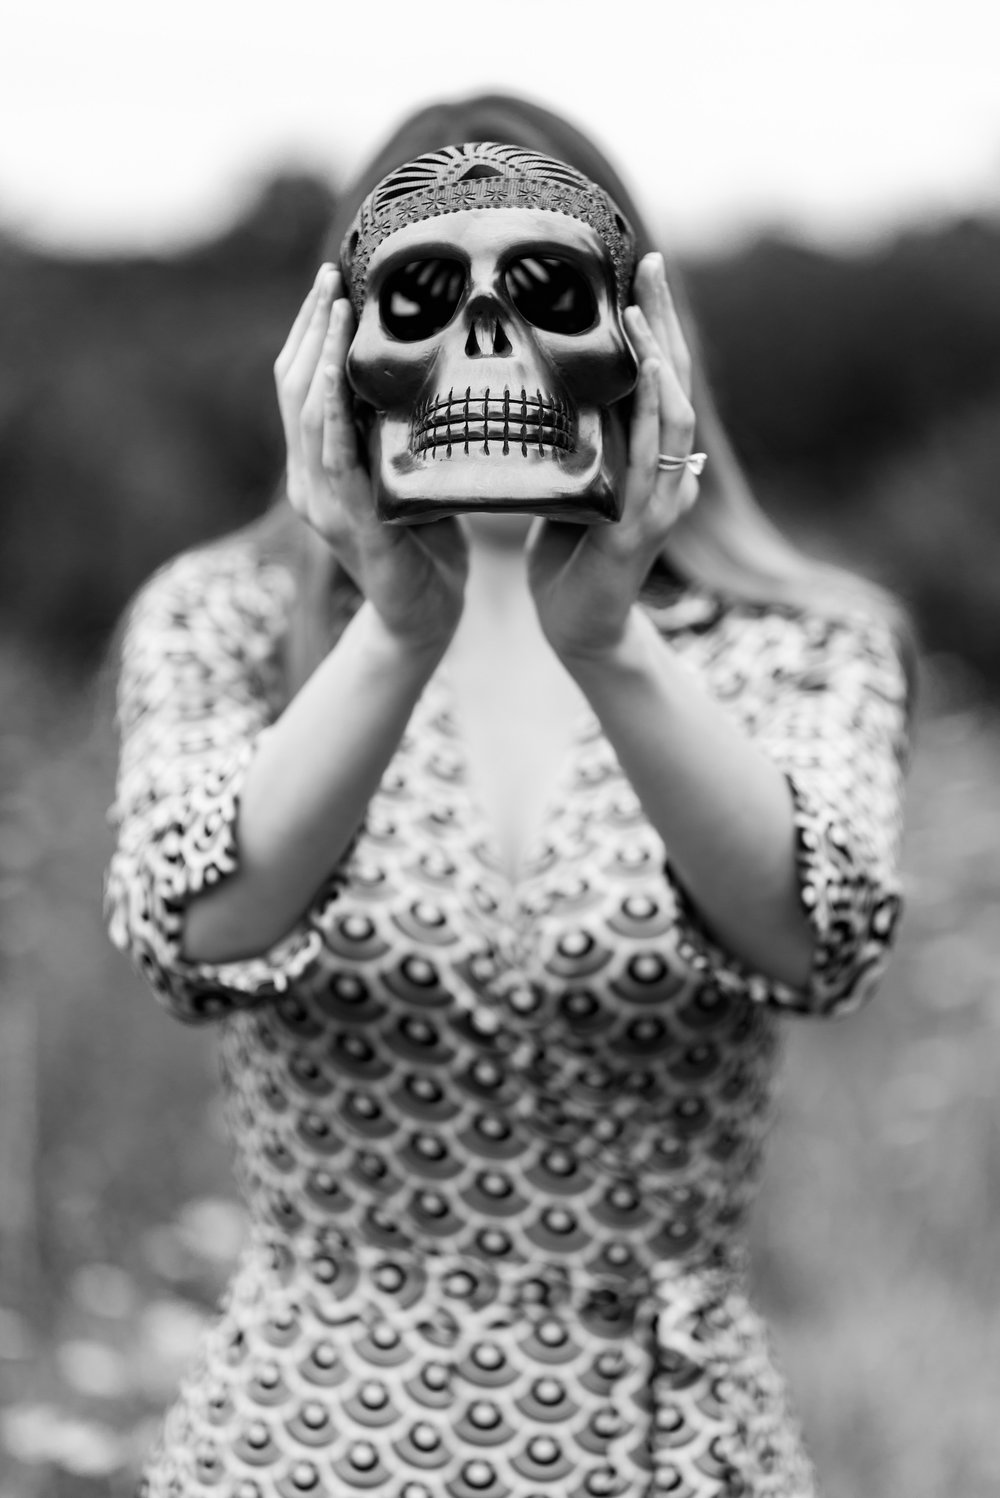 Skulls are not always feared.